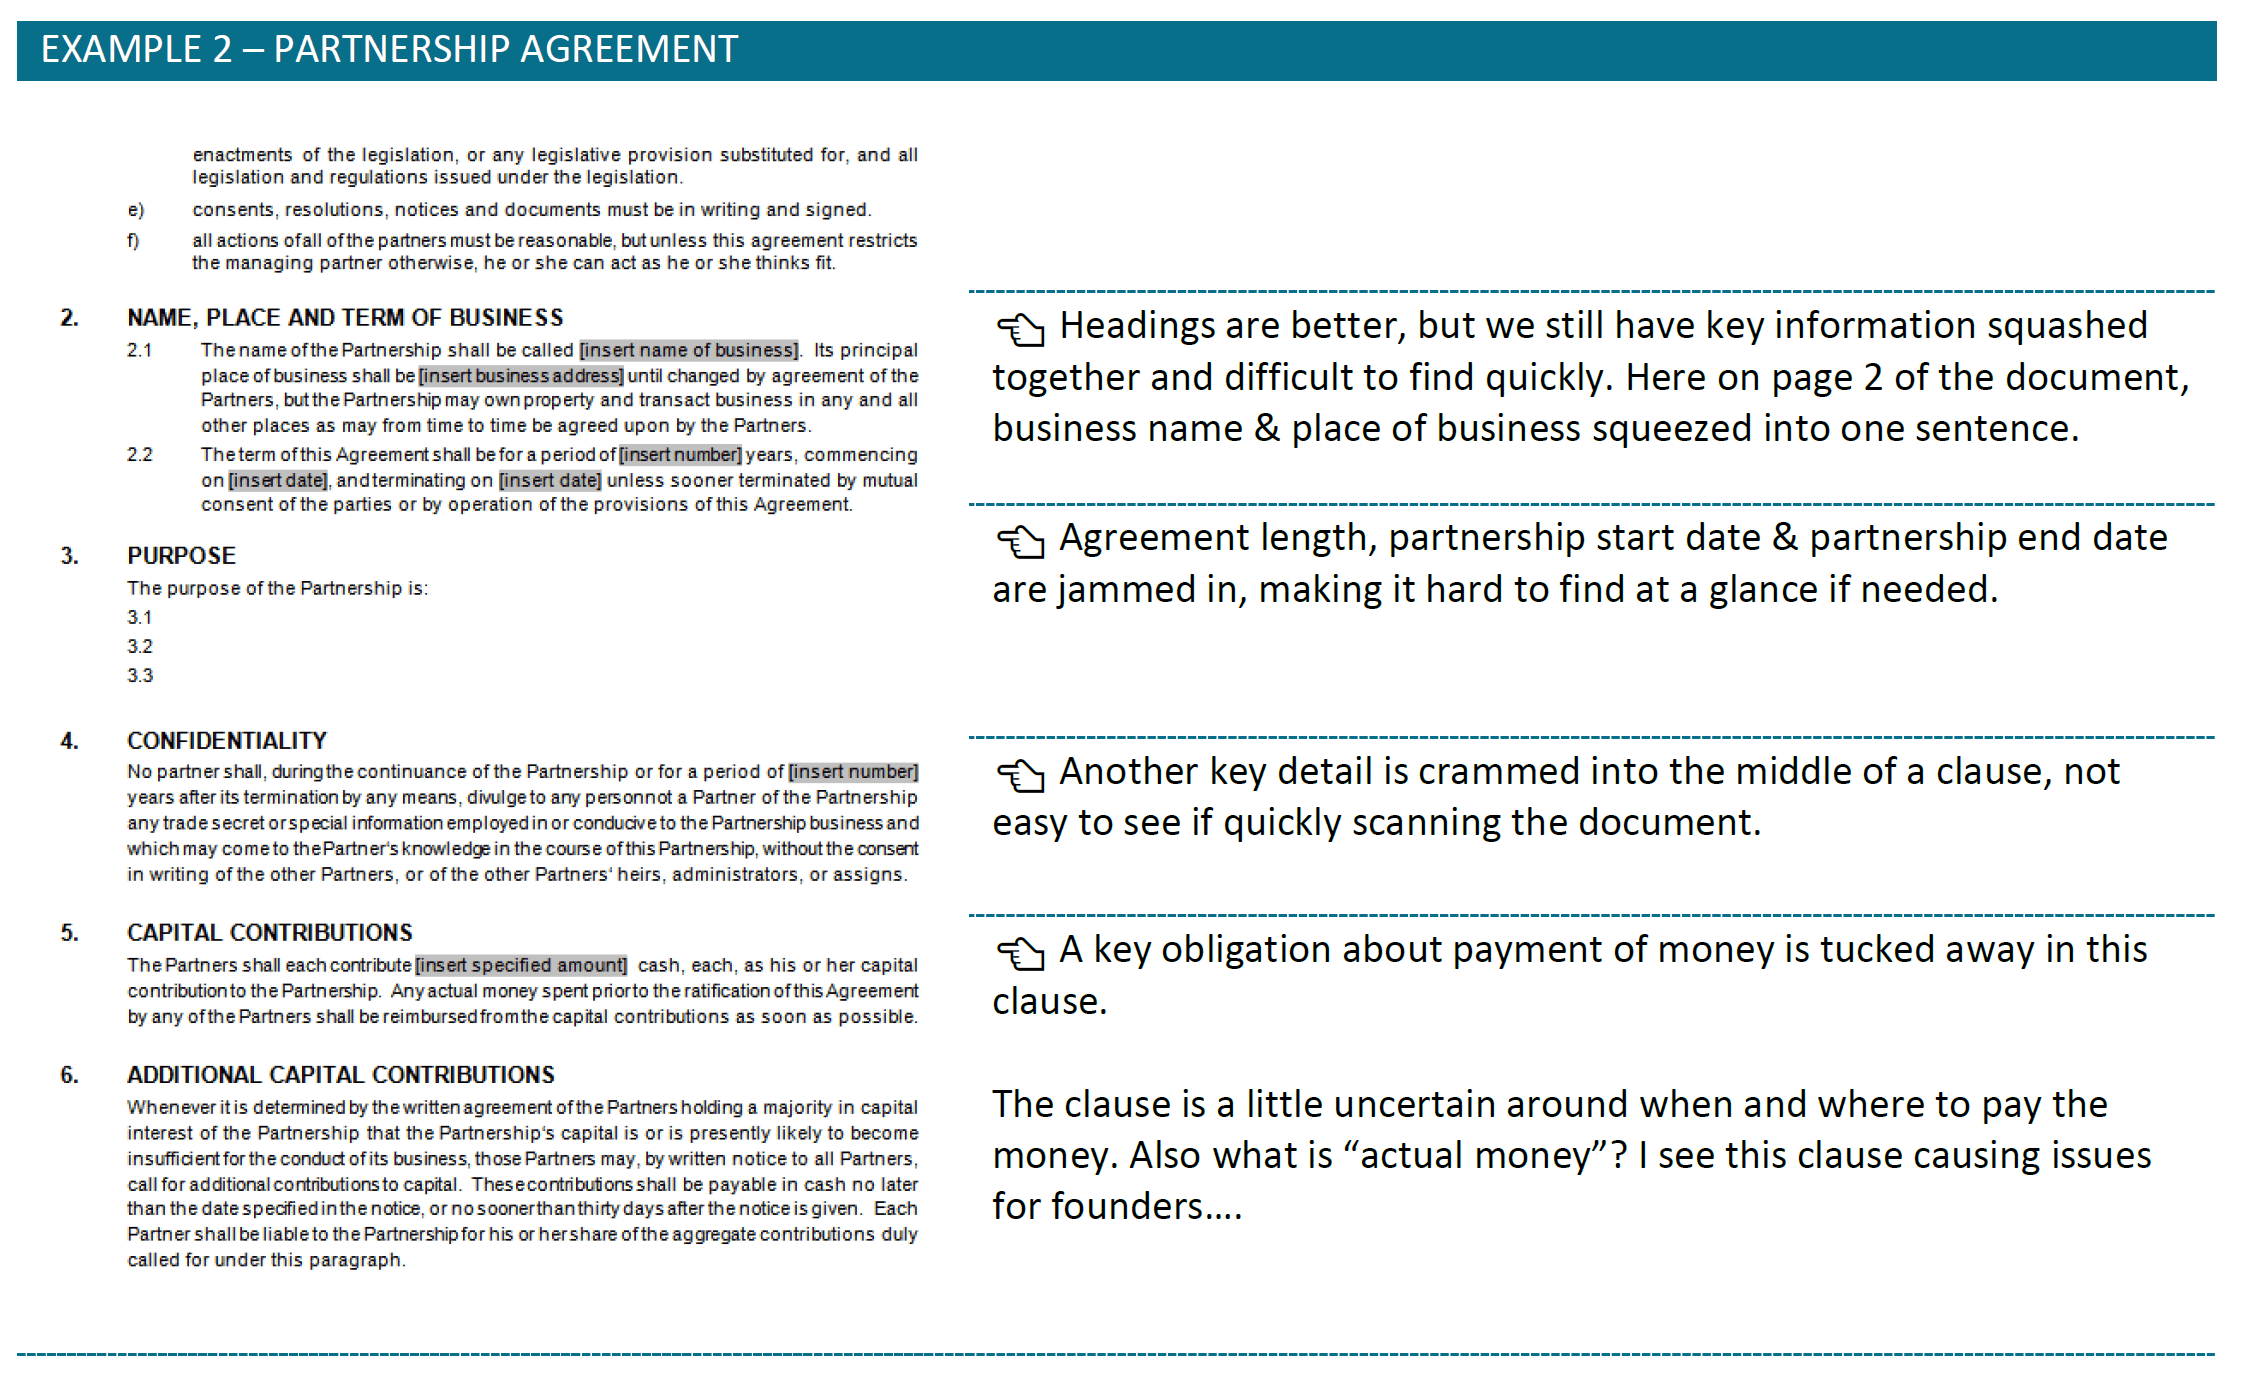 Reverse Sandwich Contracting - Page 1- The Sandwich Explained (Checklist Legal, Verity White)